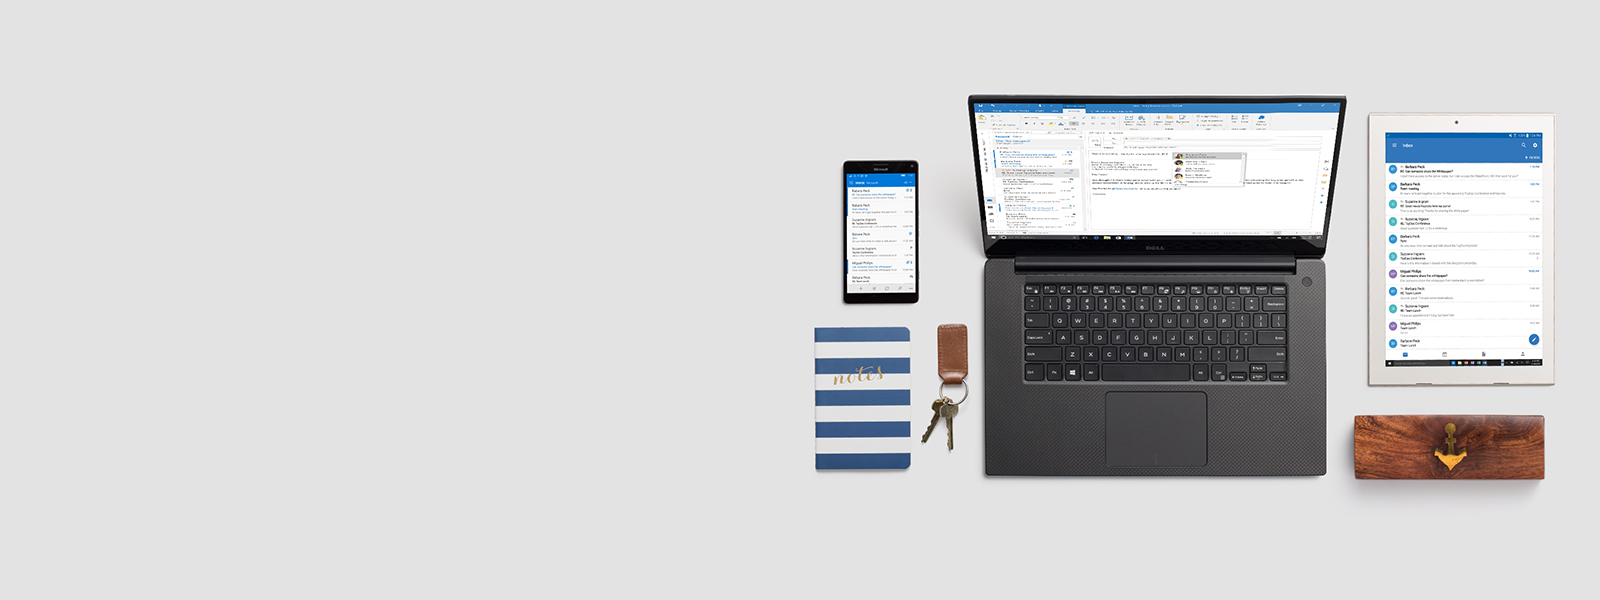 Microsoft Outlook on multiple devices